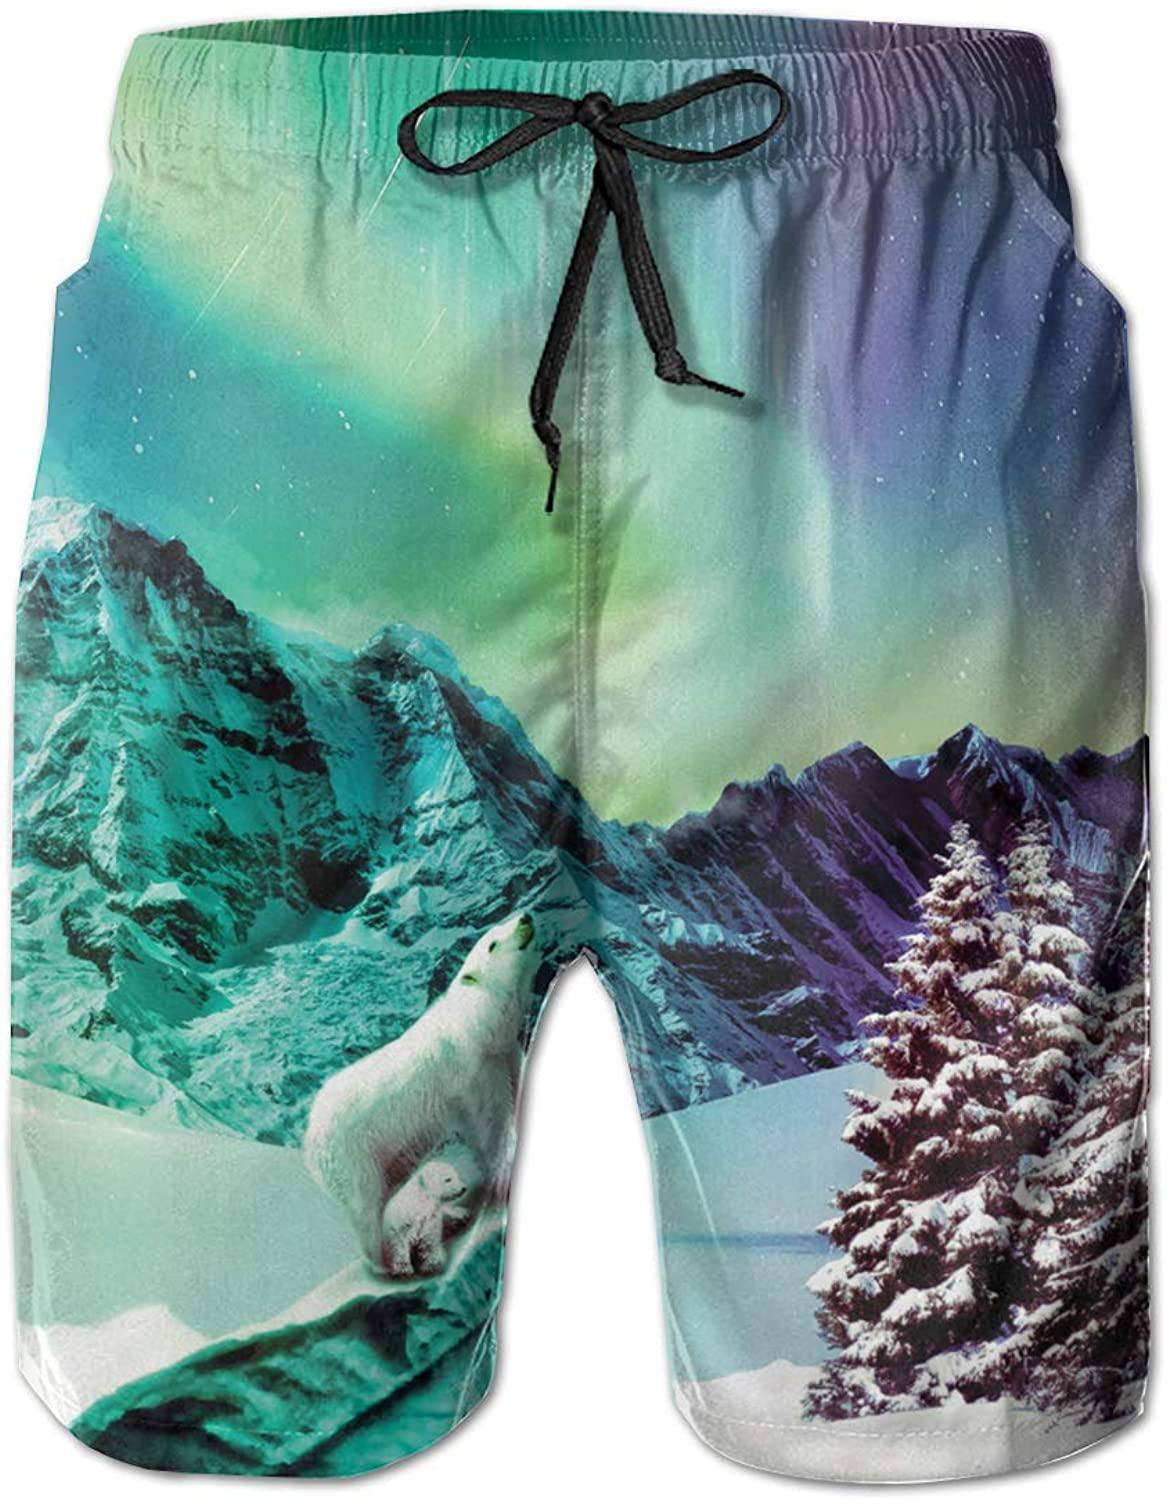 JAWANNAN Unicorn Beach Shorts, Running, Exercise, Shorts,moisture Absorption And Perspiration, Ultralight Dry And Breathable